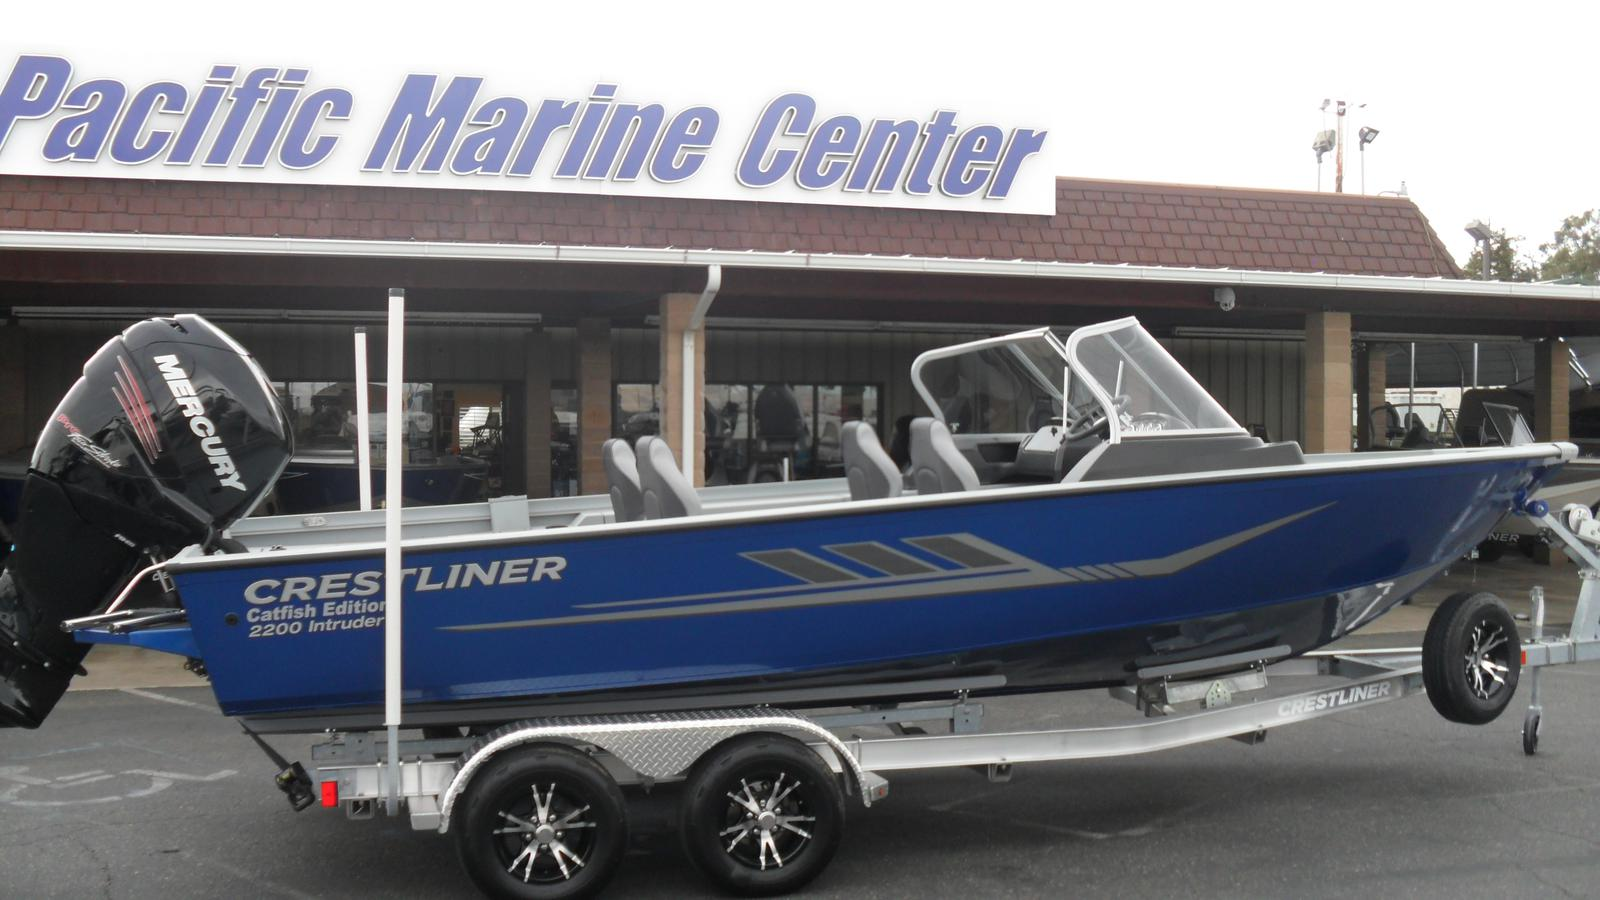 Crestliner 2200 Intruder-Mercury 250hp